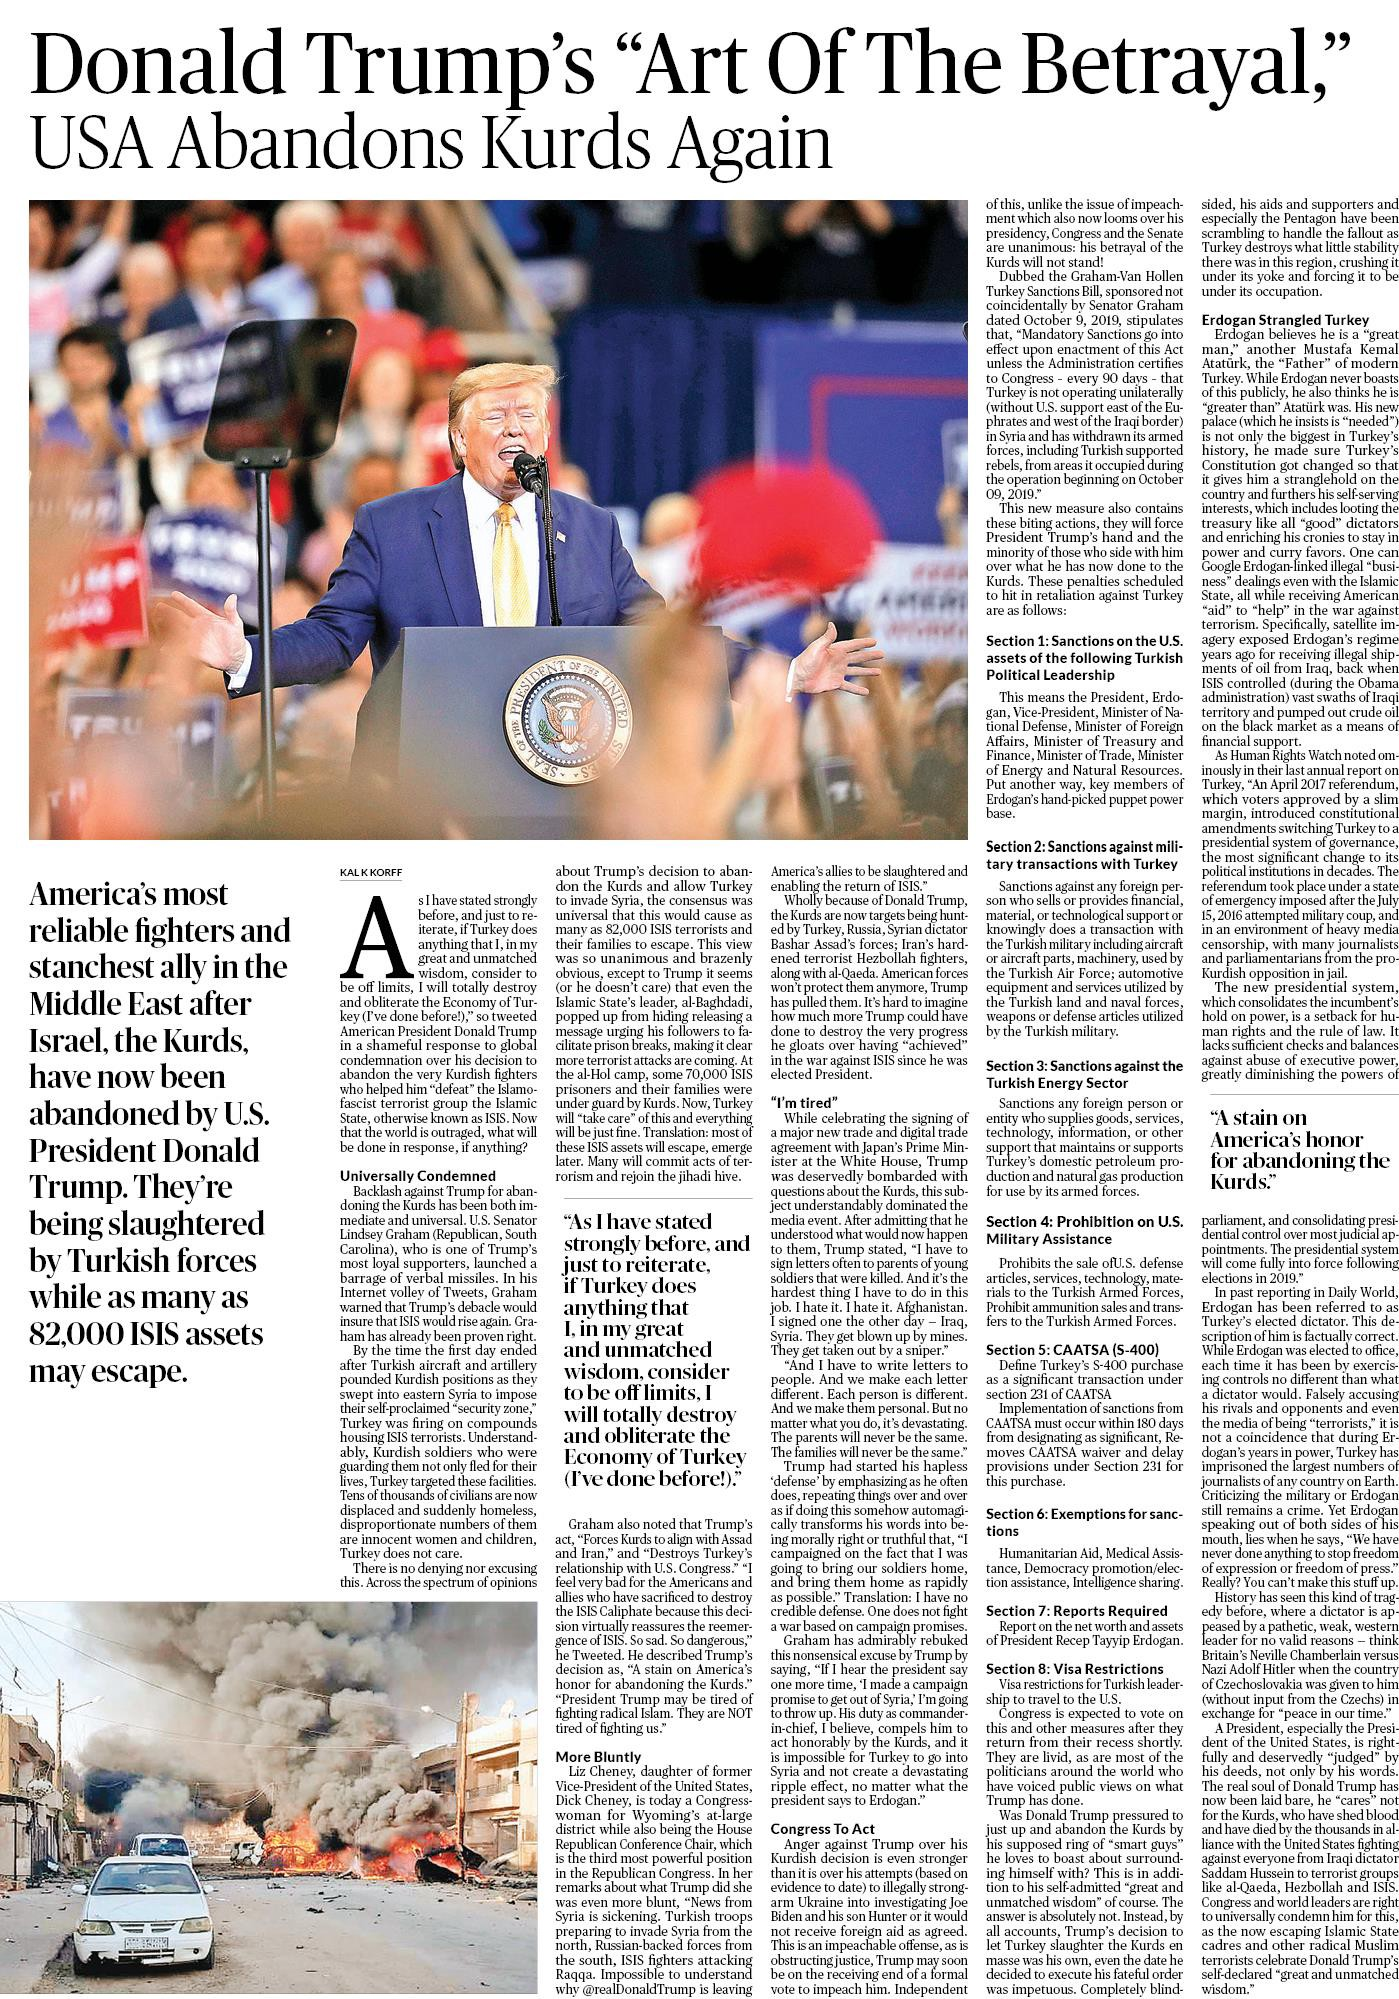 Daily World, Oct 13, 2019 Full Page Speical Sunday edition. Written by Kal K. Korff. Exposes betrayal of Kurds by Trump.